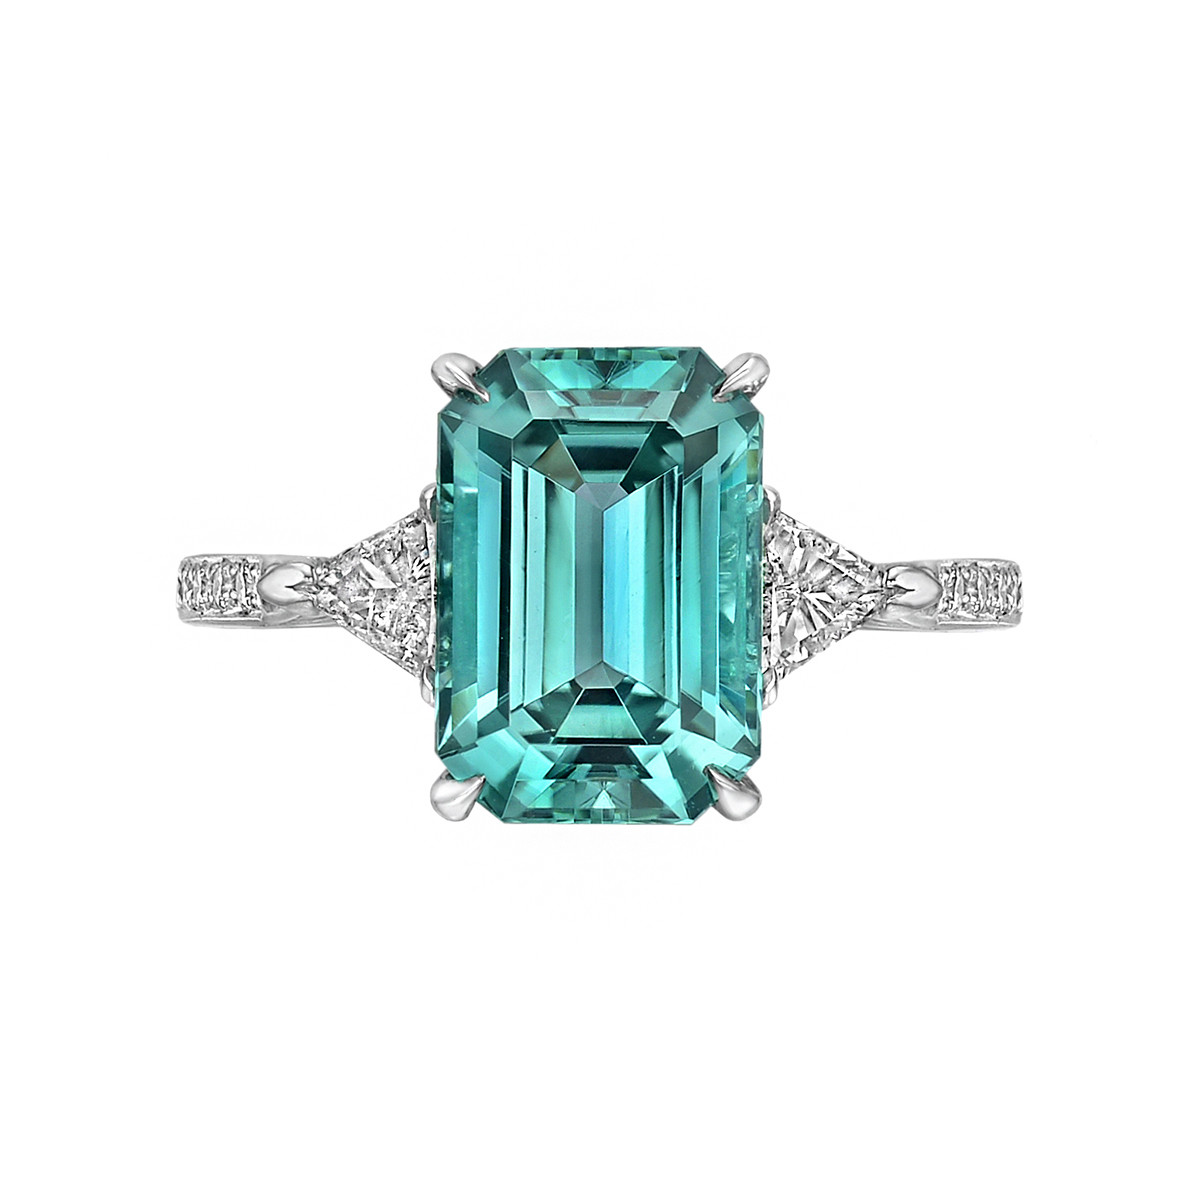 3.48 Carat Green-Blue Tourmaline & Diamond Ring